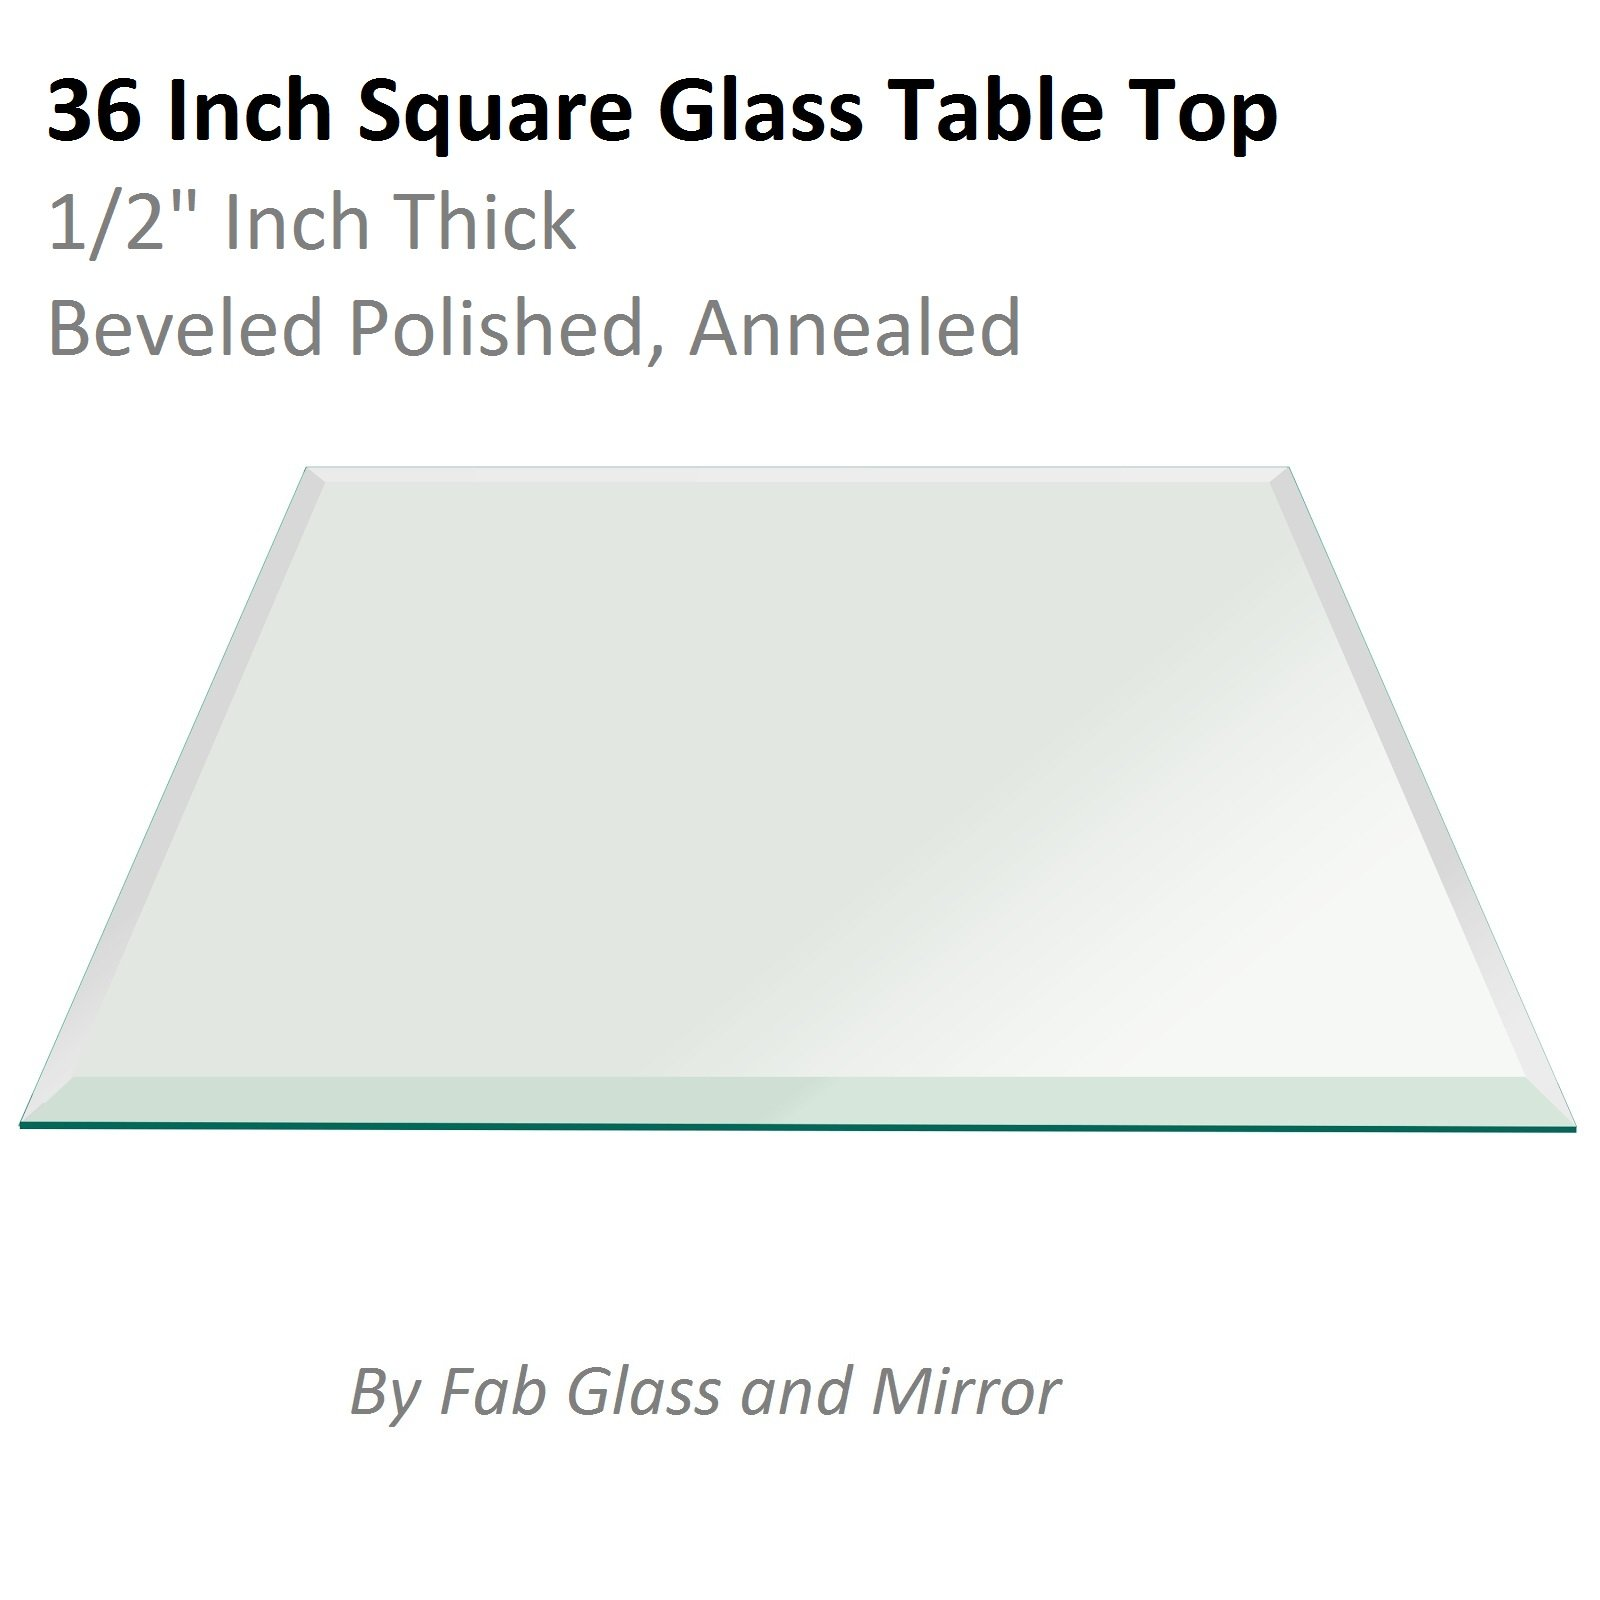 Fab Glass and Mirror Square Clear Glass Table Top 36'' Inch Tempered 1/2'' Thick Bevel Polish Radius Corners by Fab Glass and Mirror